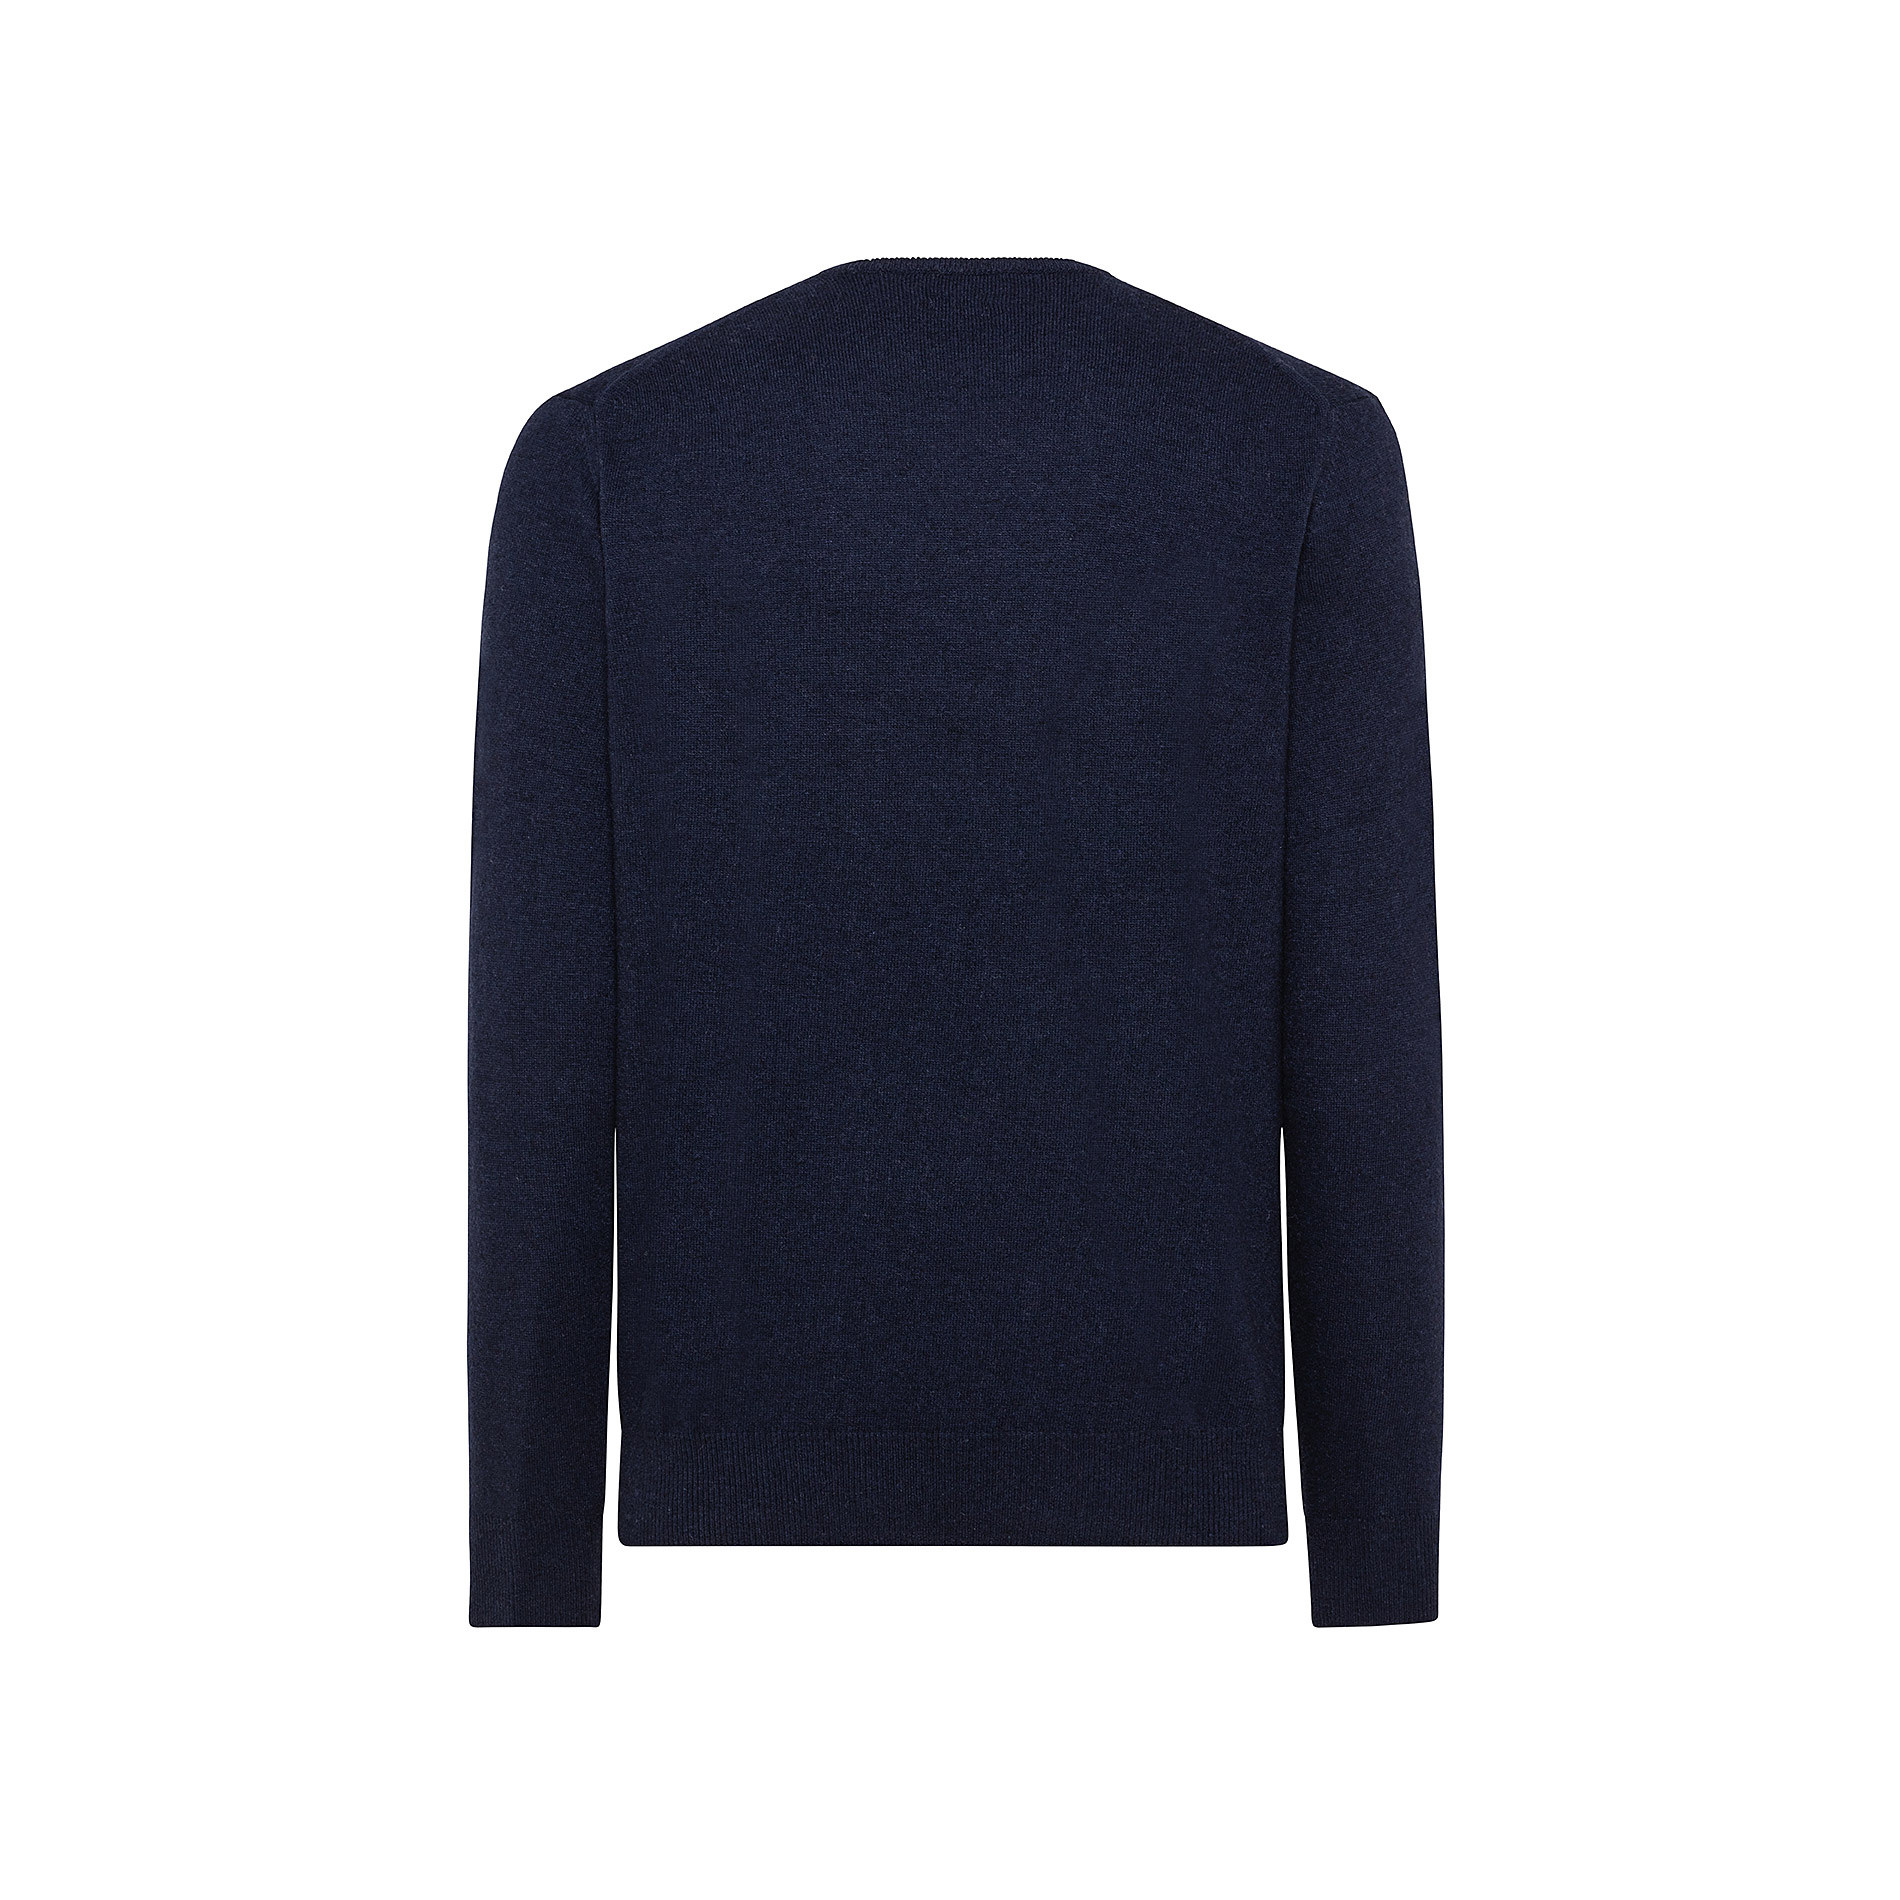 Pullover girocollo in cashmere blend, Blu, large image number 1